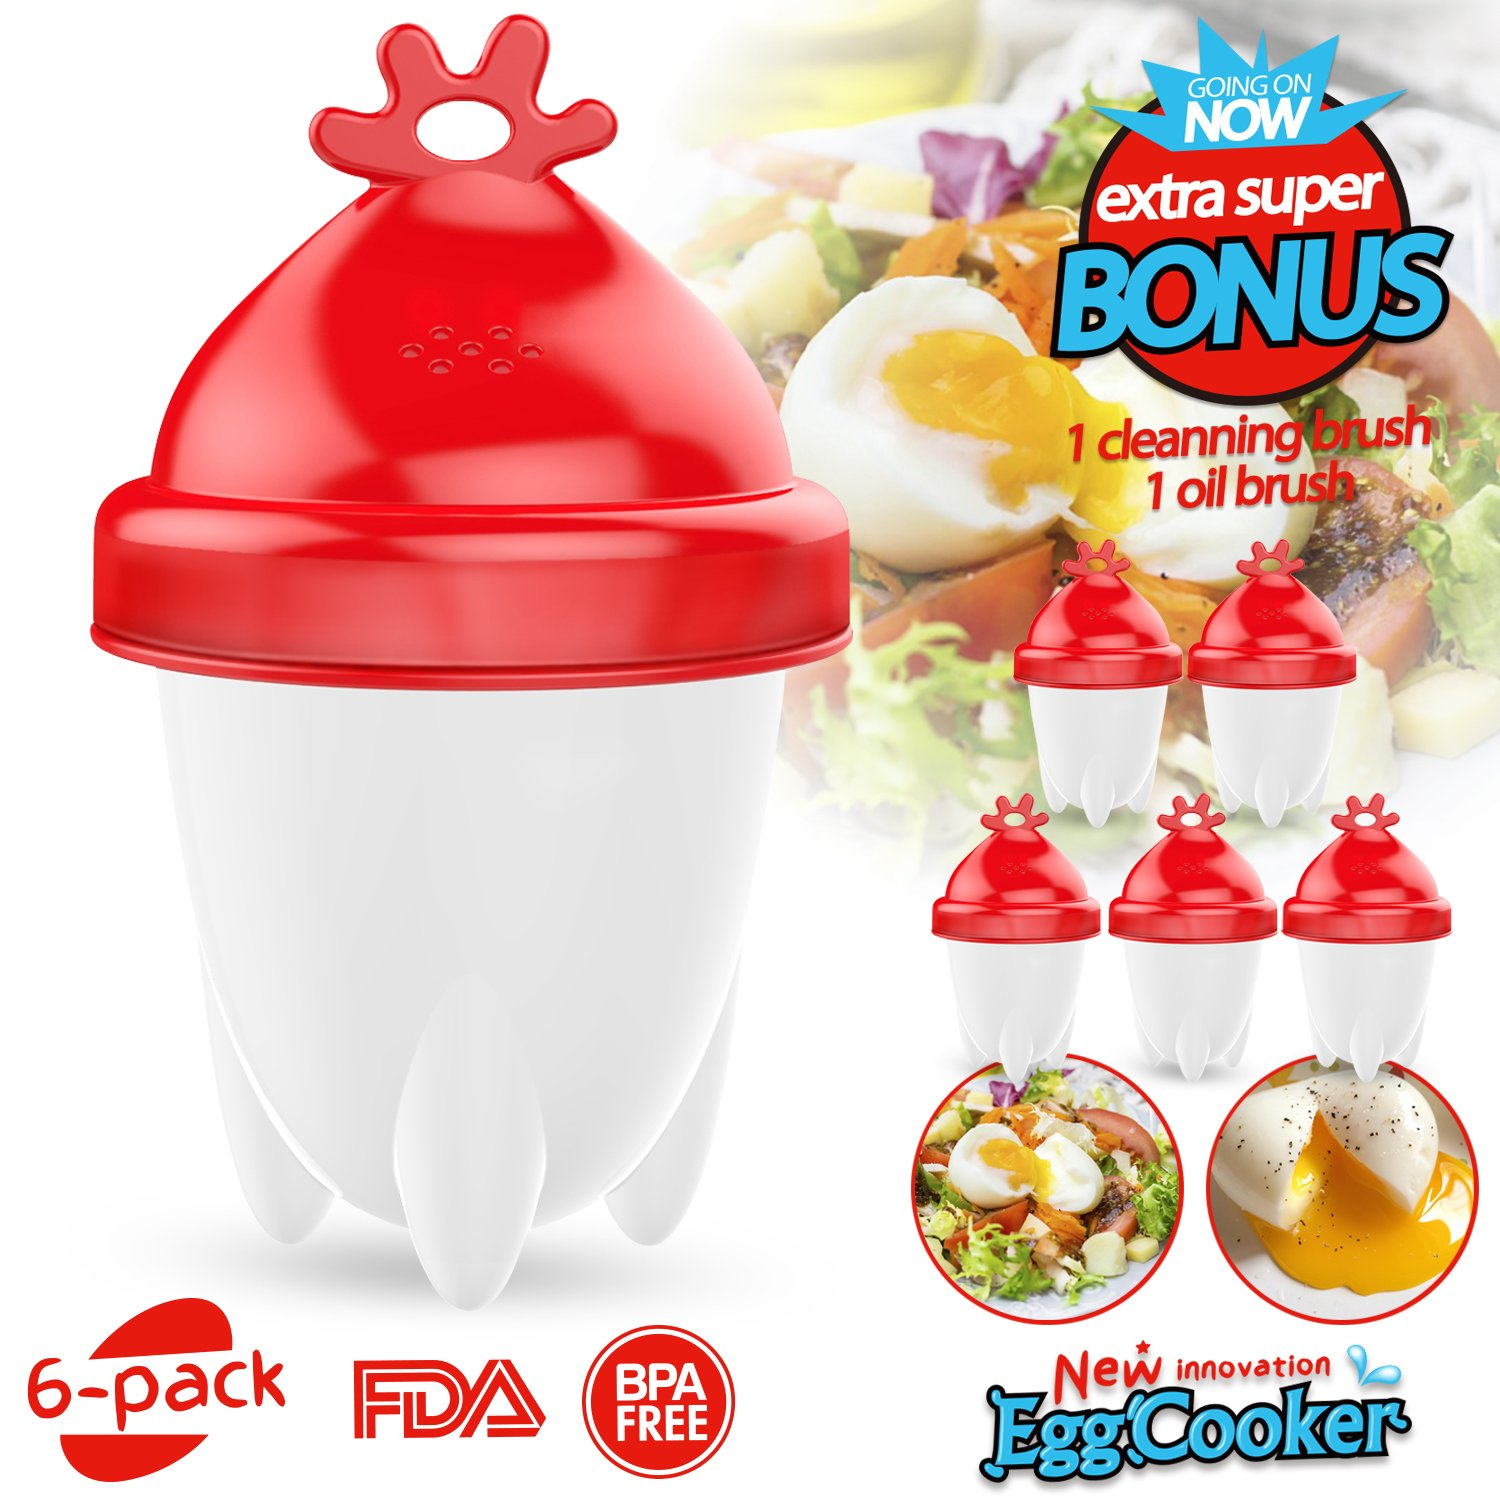 Egg Cooker, Hard & Soft Maker Egg Cooker New Vertion BPA Free Non Stick Silicone (6PACK), Great gift for her.